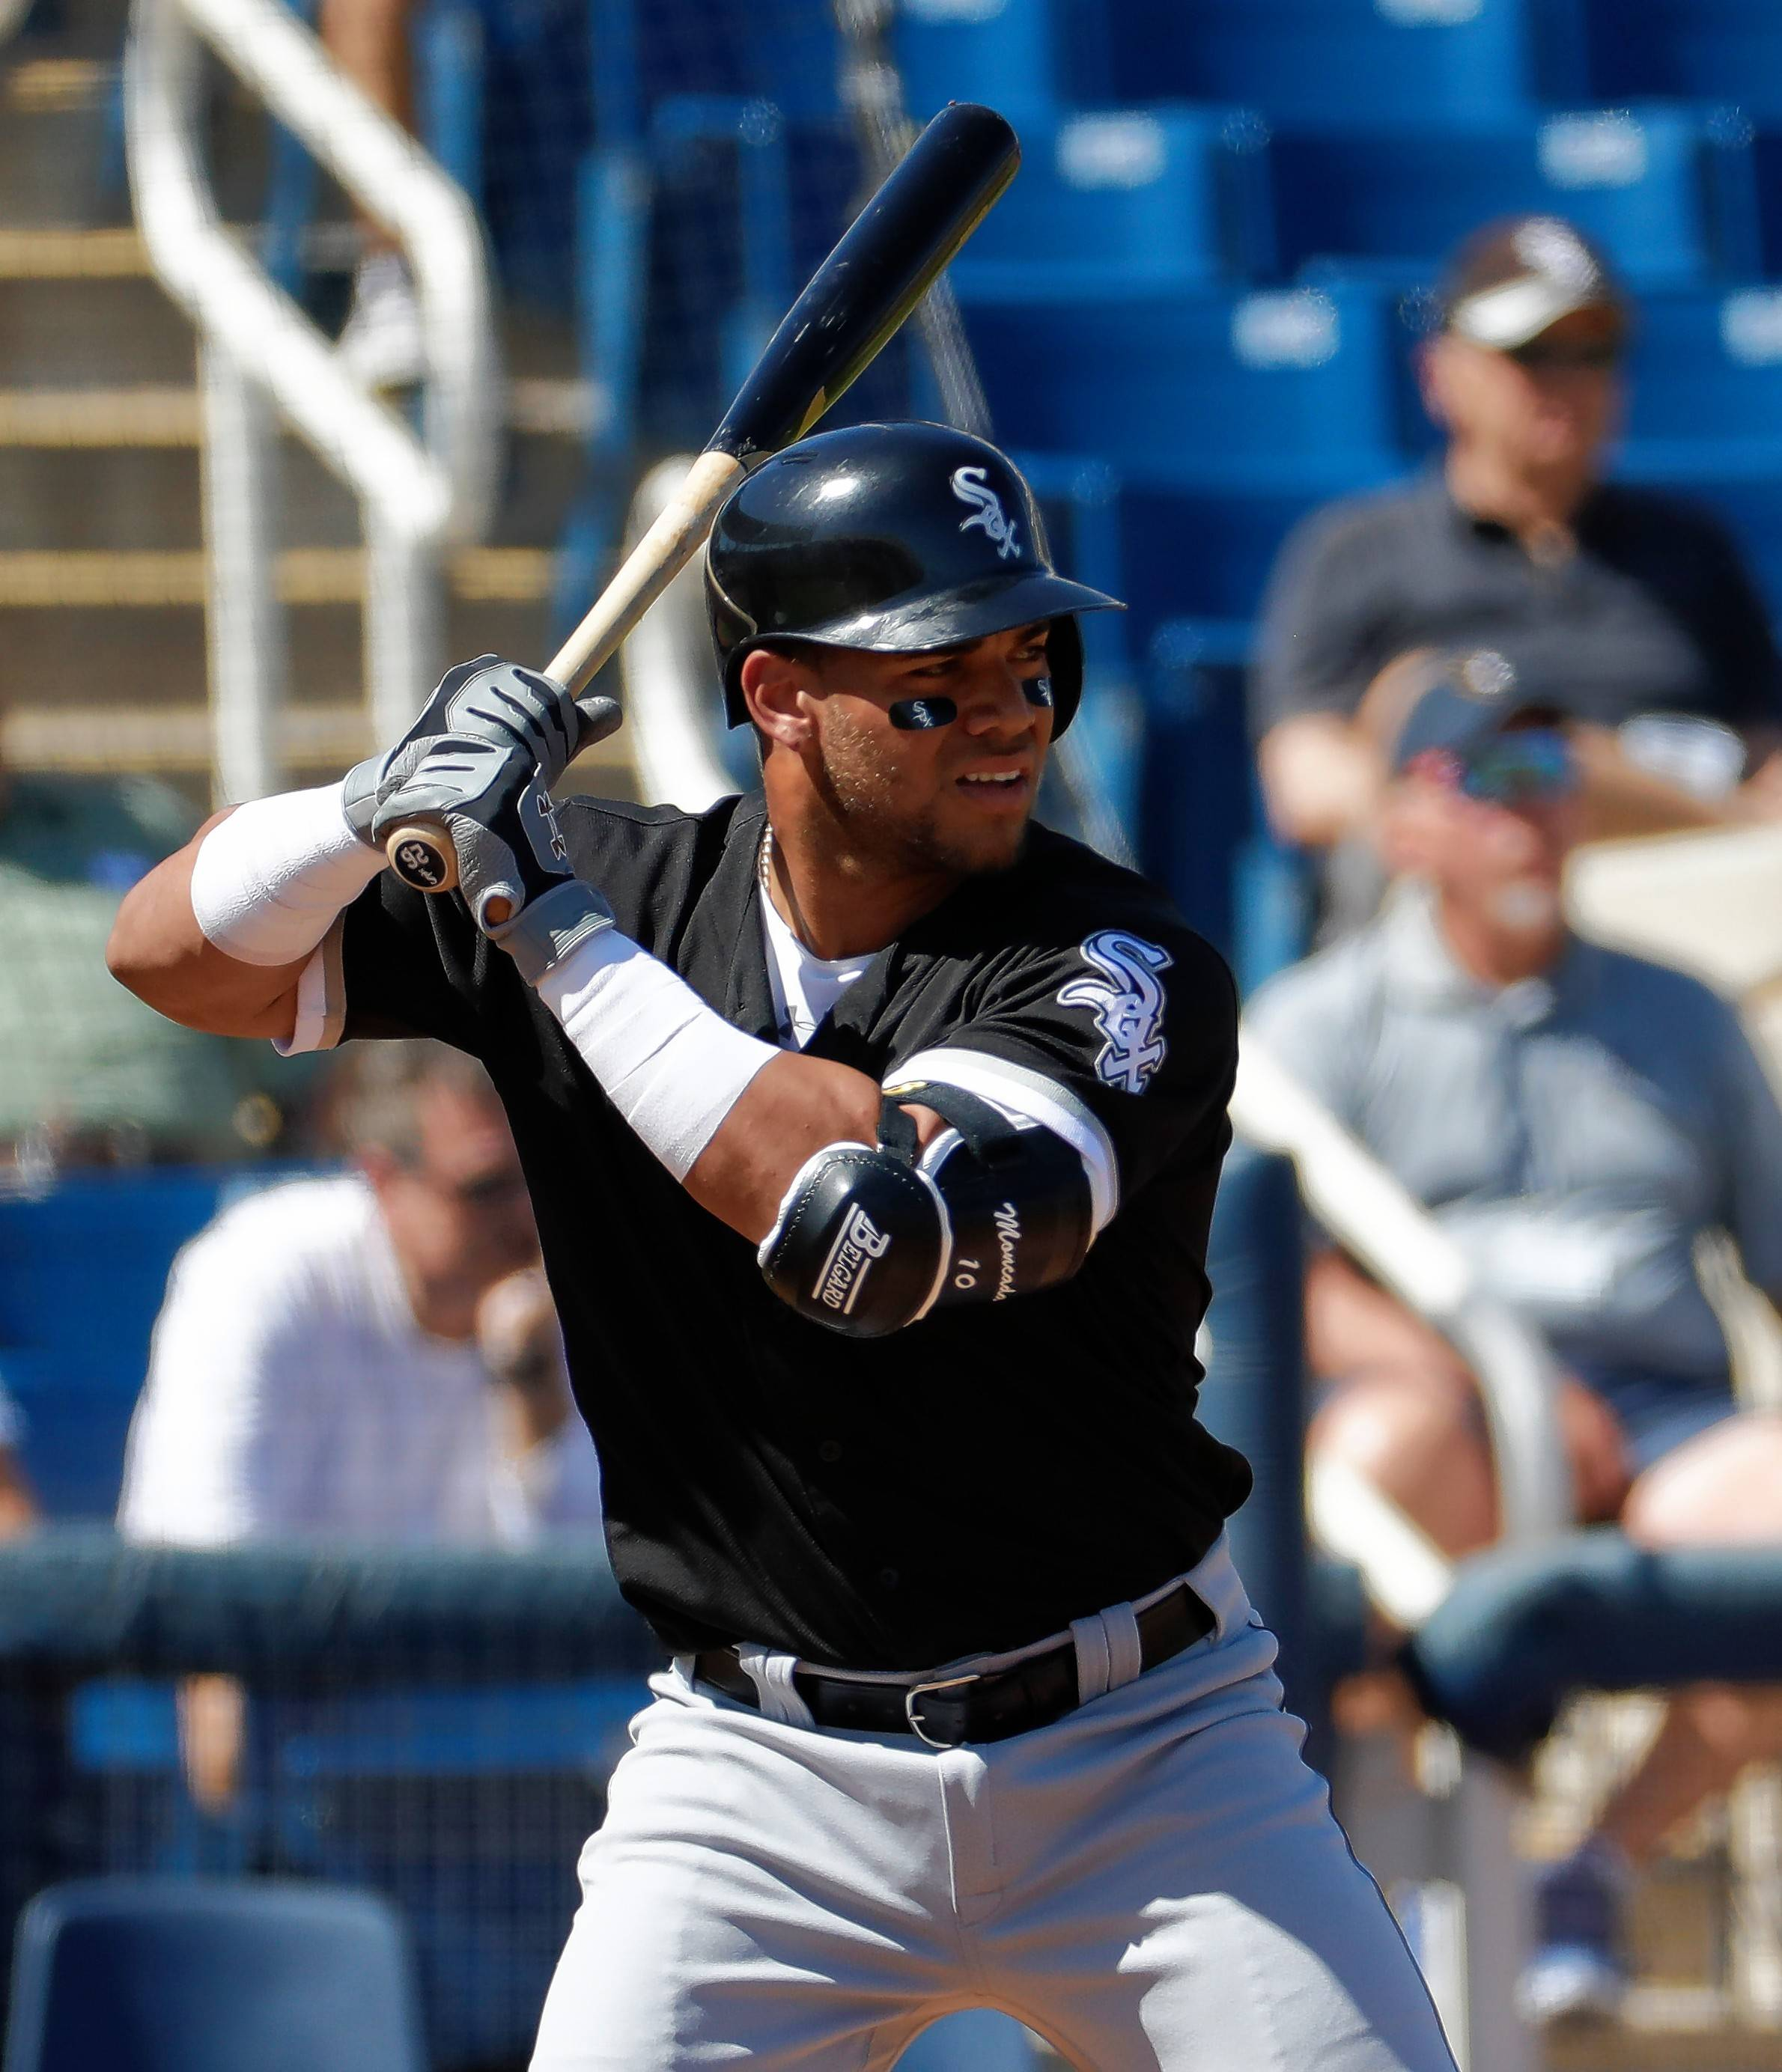 The Chicago White Sox are keeping close tabs on two prospects acquired in off-season trades. Second baseman Yoan Moncada, above, is living up to his reputation at Class AAA Charlotte and starting pitcher Dane Dunning is thriving at the Class A level.